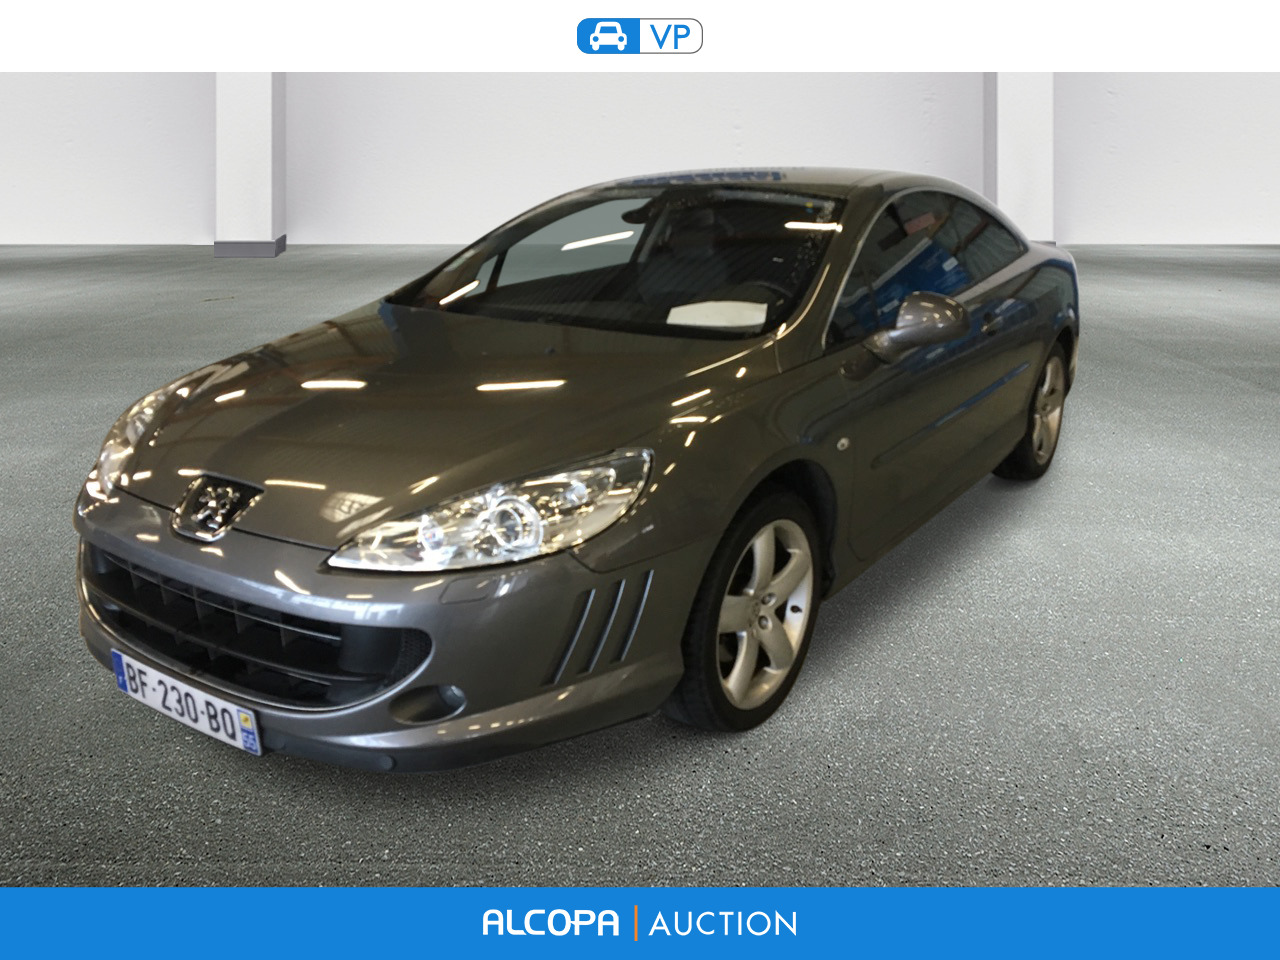 peugeot 407 407 coupe 2 0 hdi 163ch fap navteq rennes alcopa auction. Black Bedroom Furniture Sets. Home Design Ideas